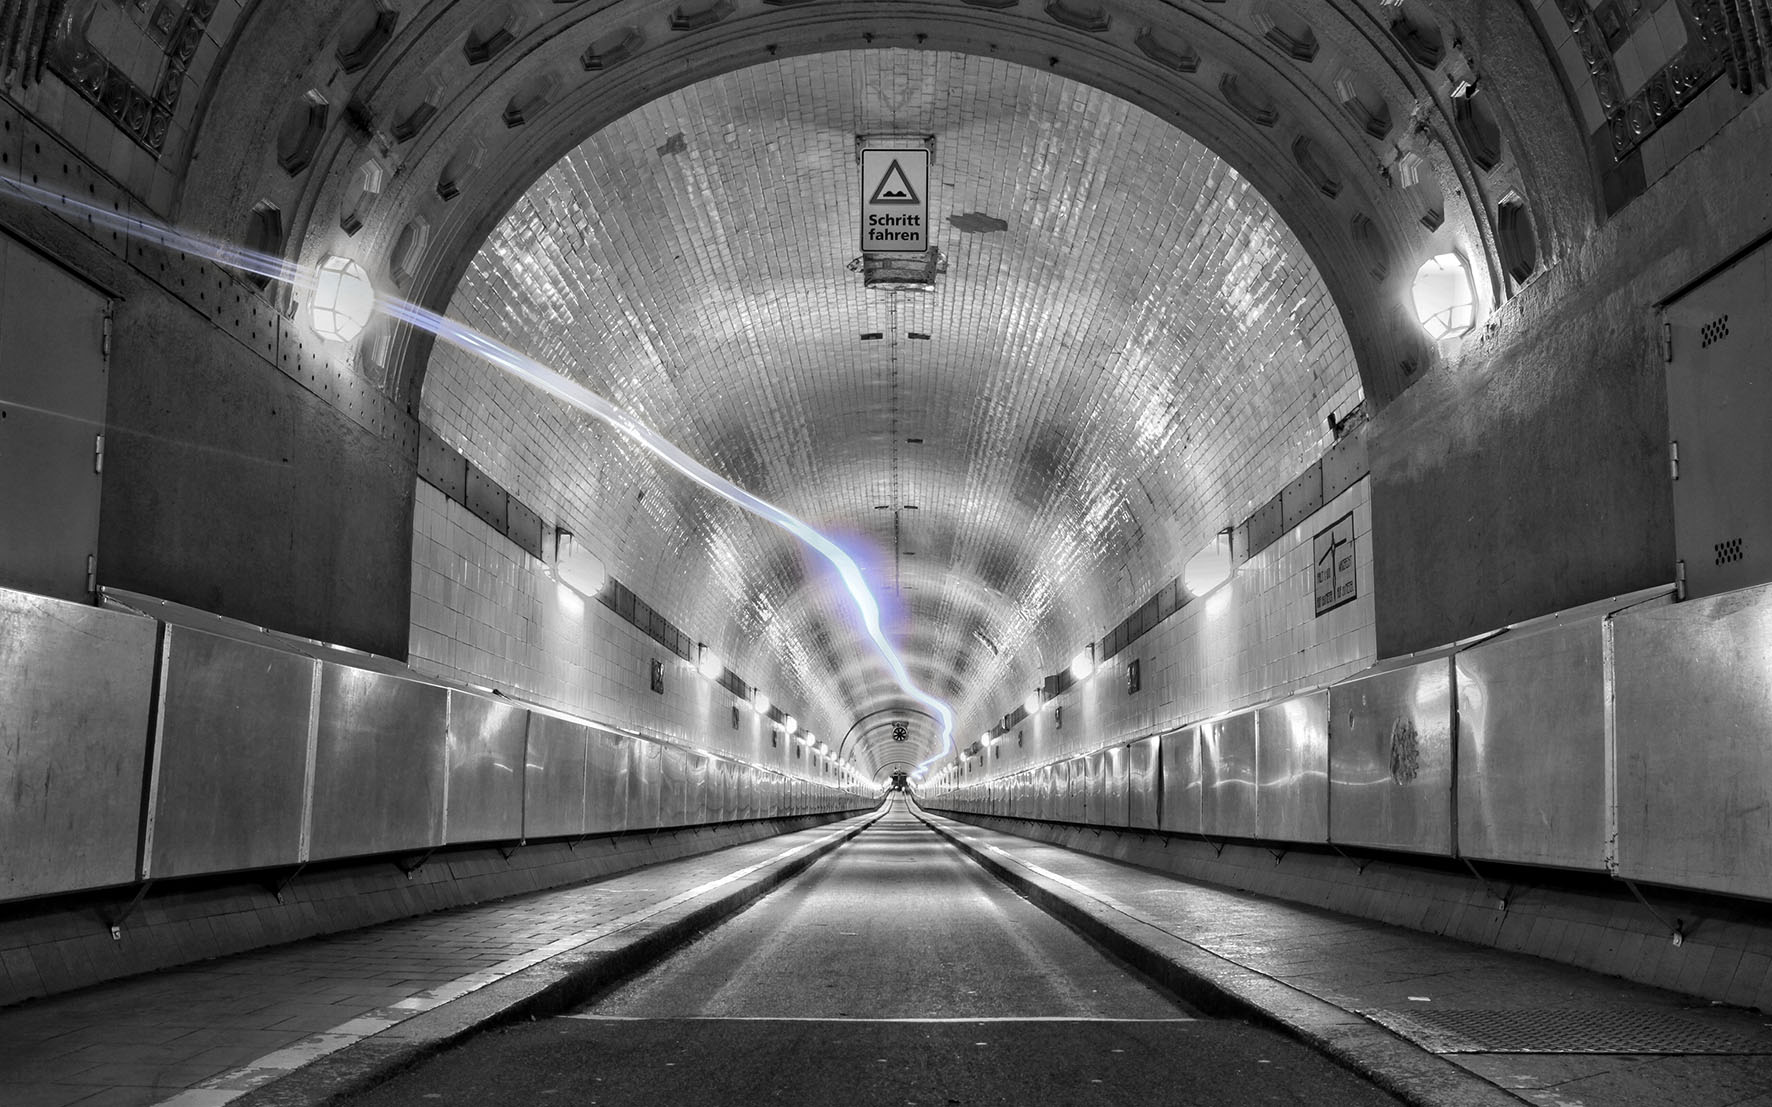 Hamburg Elbtunnel